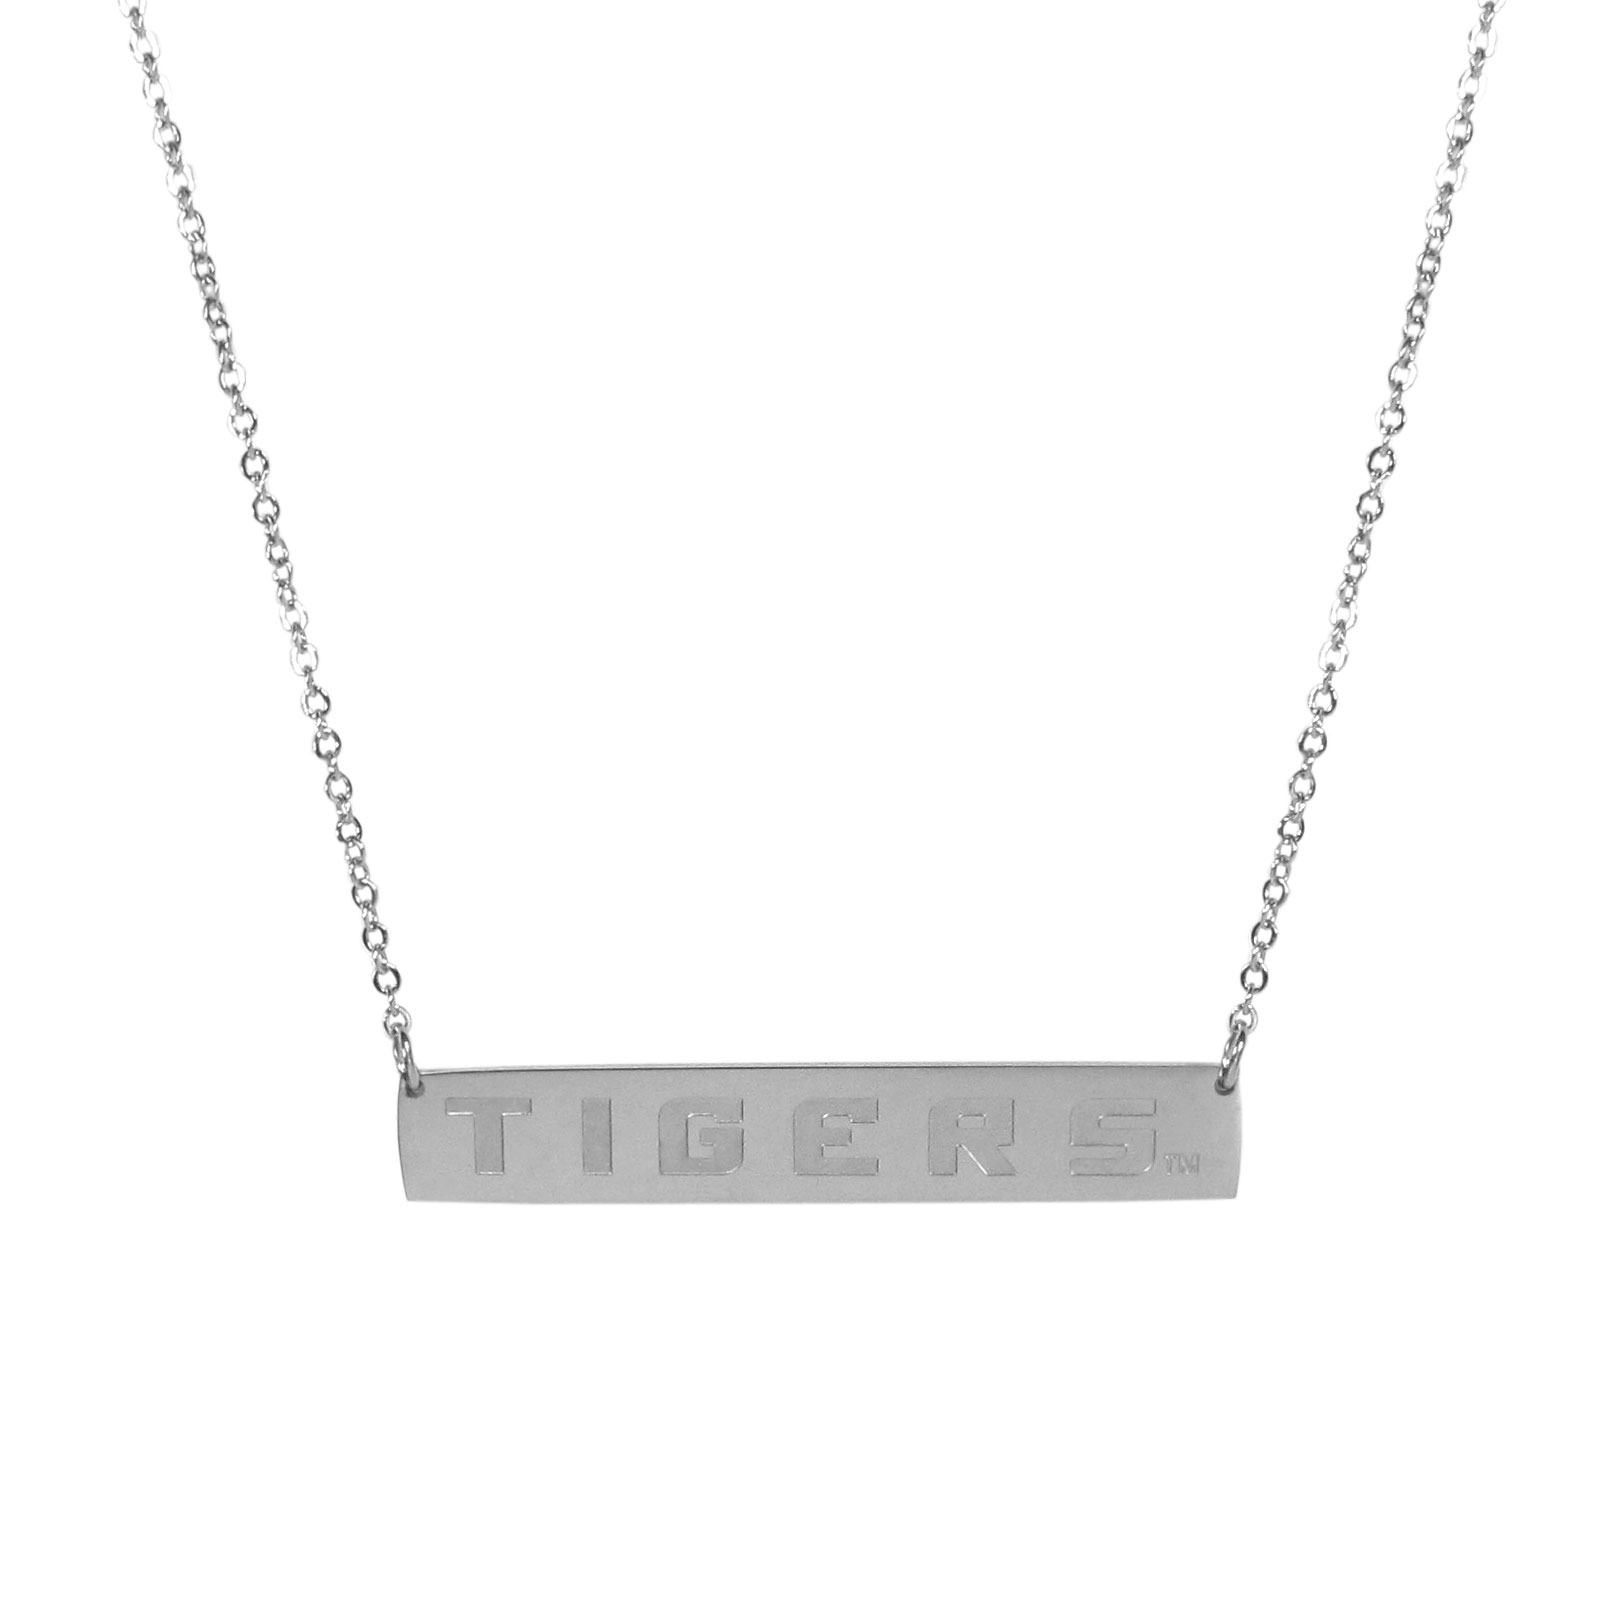 LSU Tigers Bar Necklace - Simply beautiful LSU Tigers bar necklace on a 20 inch link chain with 2 inch adjustable extender. This light-weight bar necklace has a stylish silver colored finish with the team name expertly etched on the 1.5 inch bar. Every female  fan will enjoy this contempory fashion accessory.